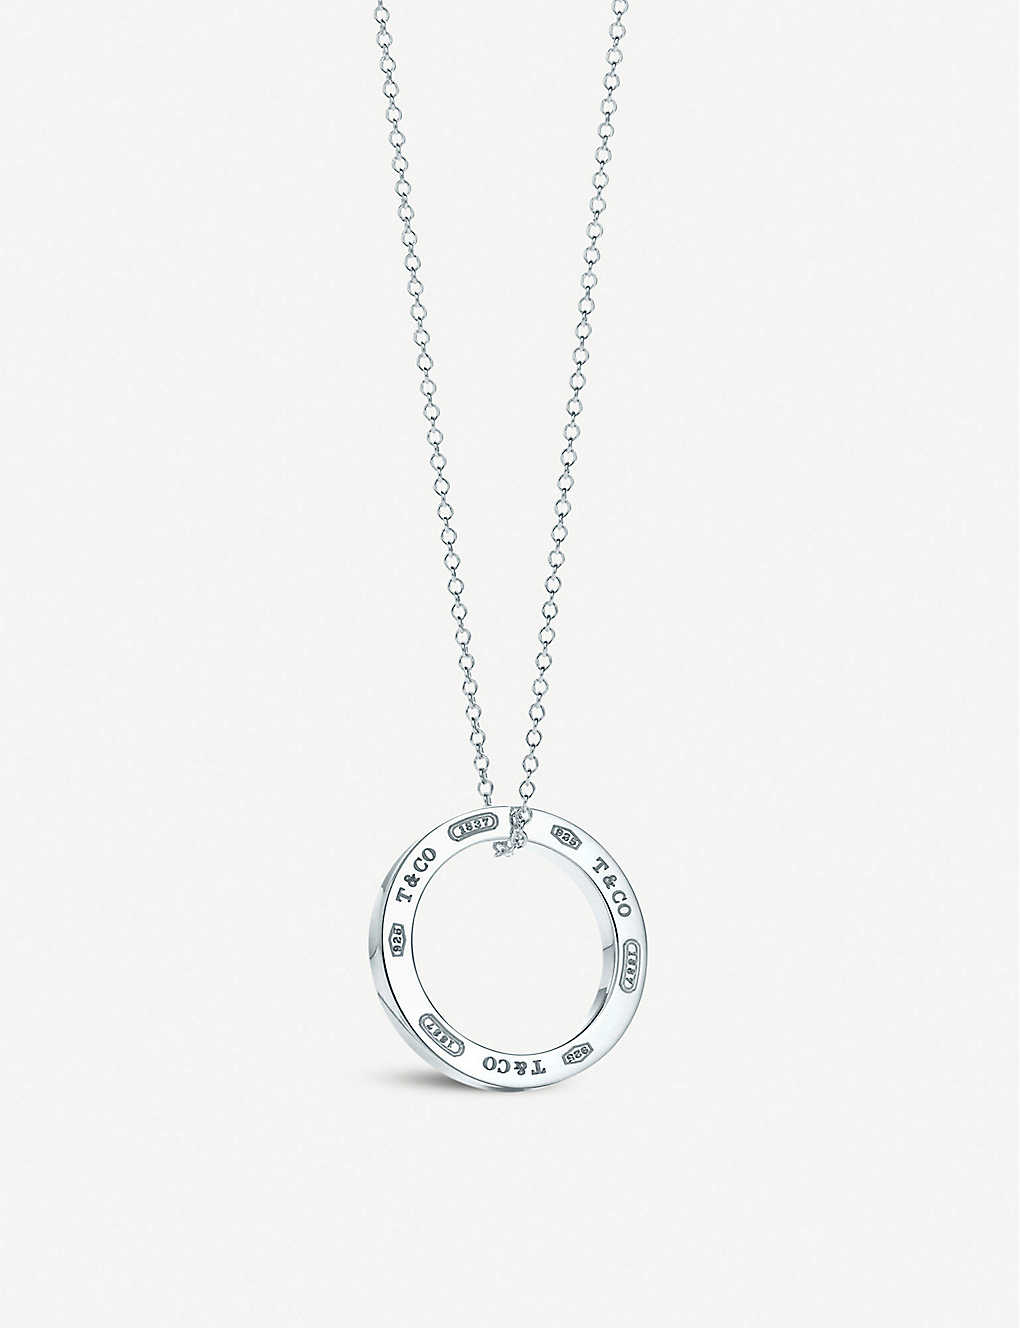 Tiffany co fine jewellery jewellery watches selfridges tiffany co tiffany 1837 circle pendant in sterling silver medium aloadofball